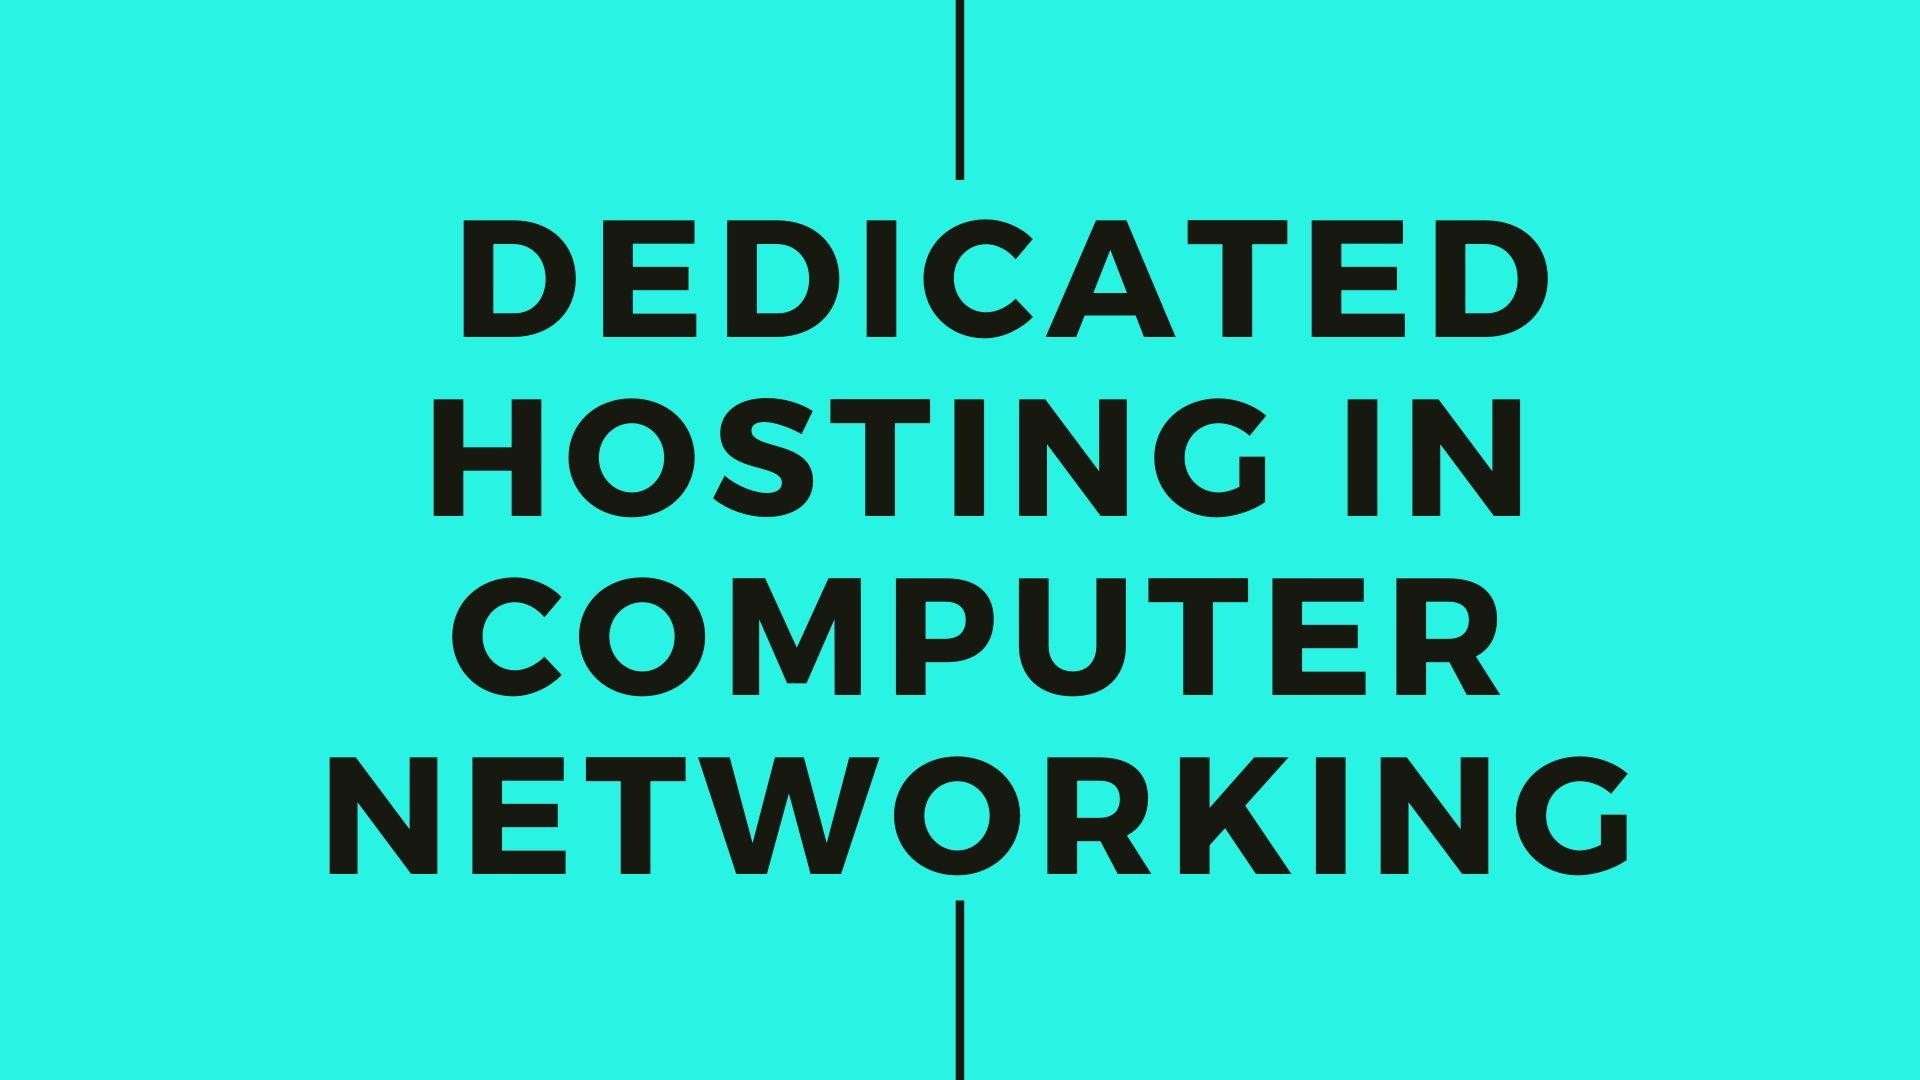 Dedicated hosting in computer networking